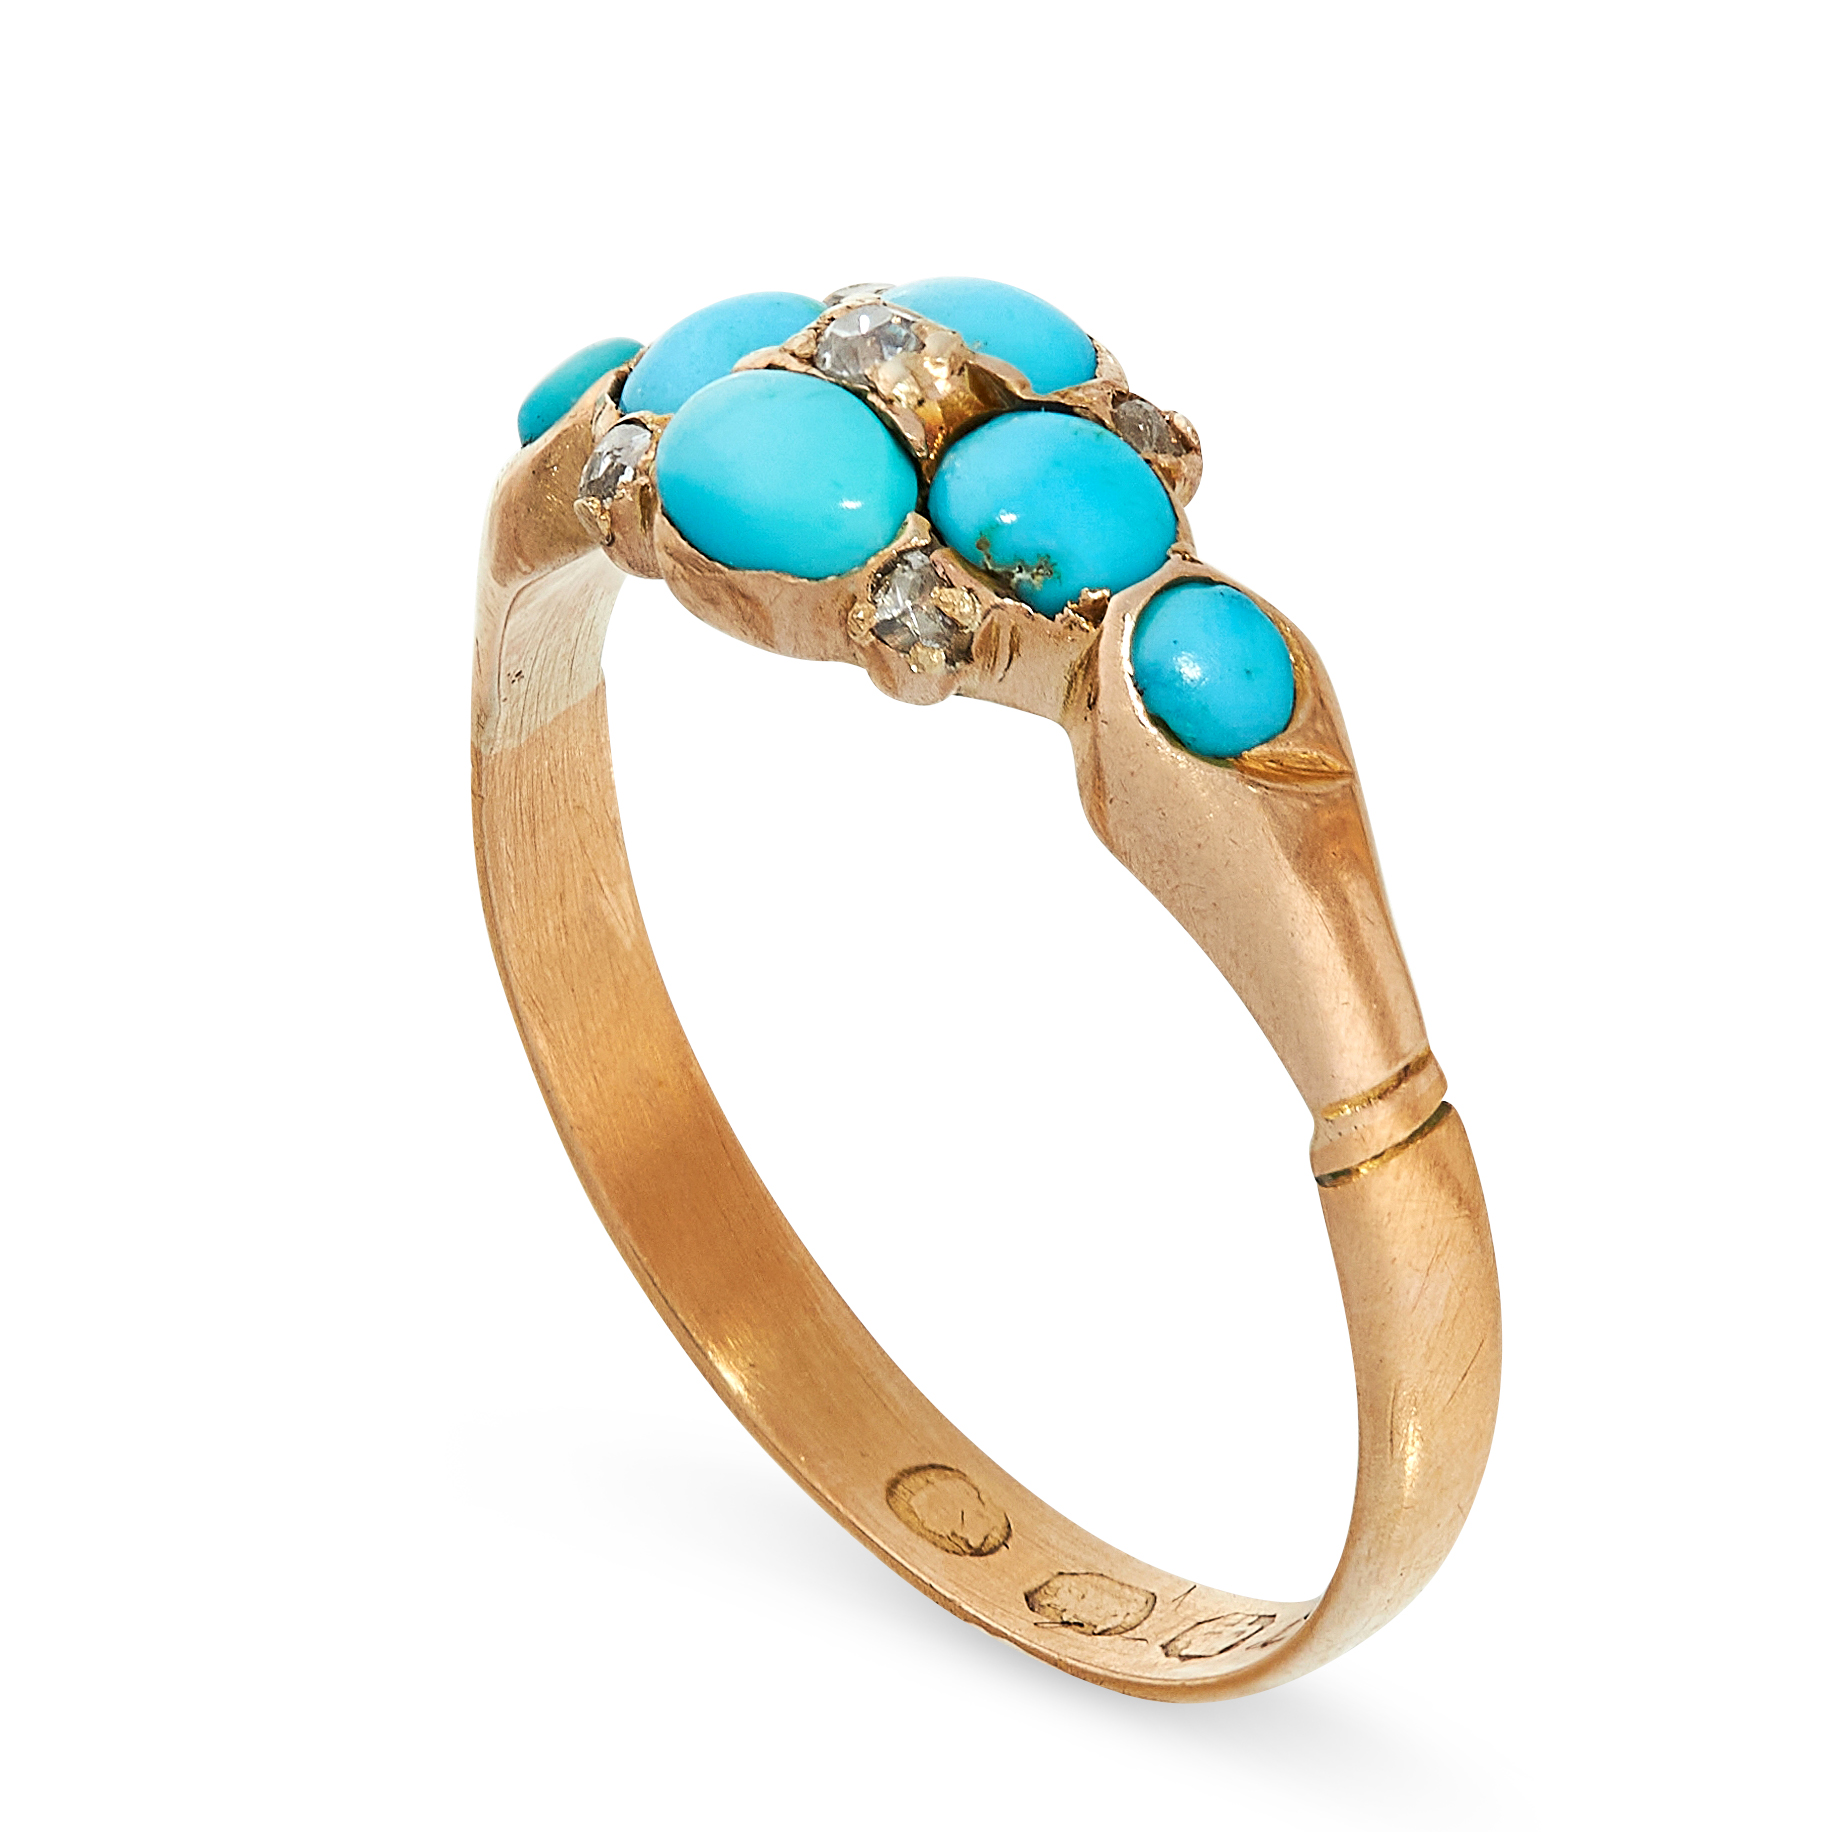 ANTIQUE TURQUOISE AND DIAMOND RING in 22ct yellow gold, in the form of a flower set with cabochon - Image 2 of 2